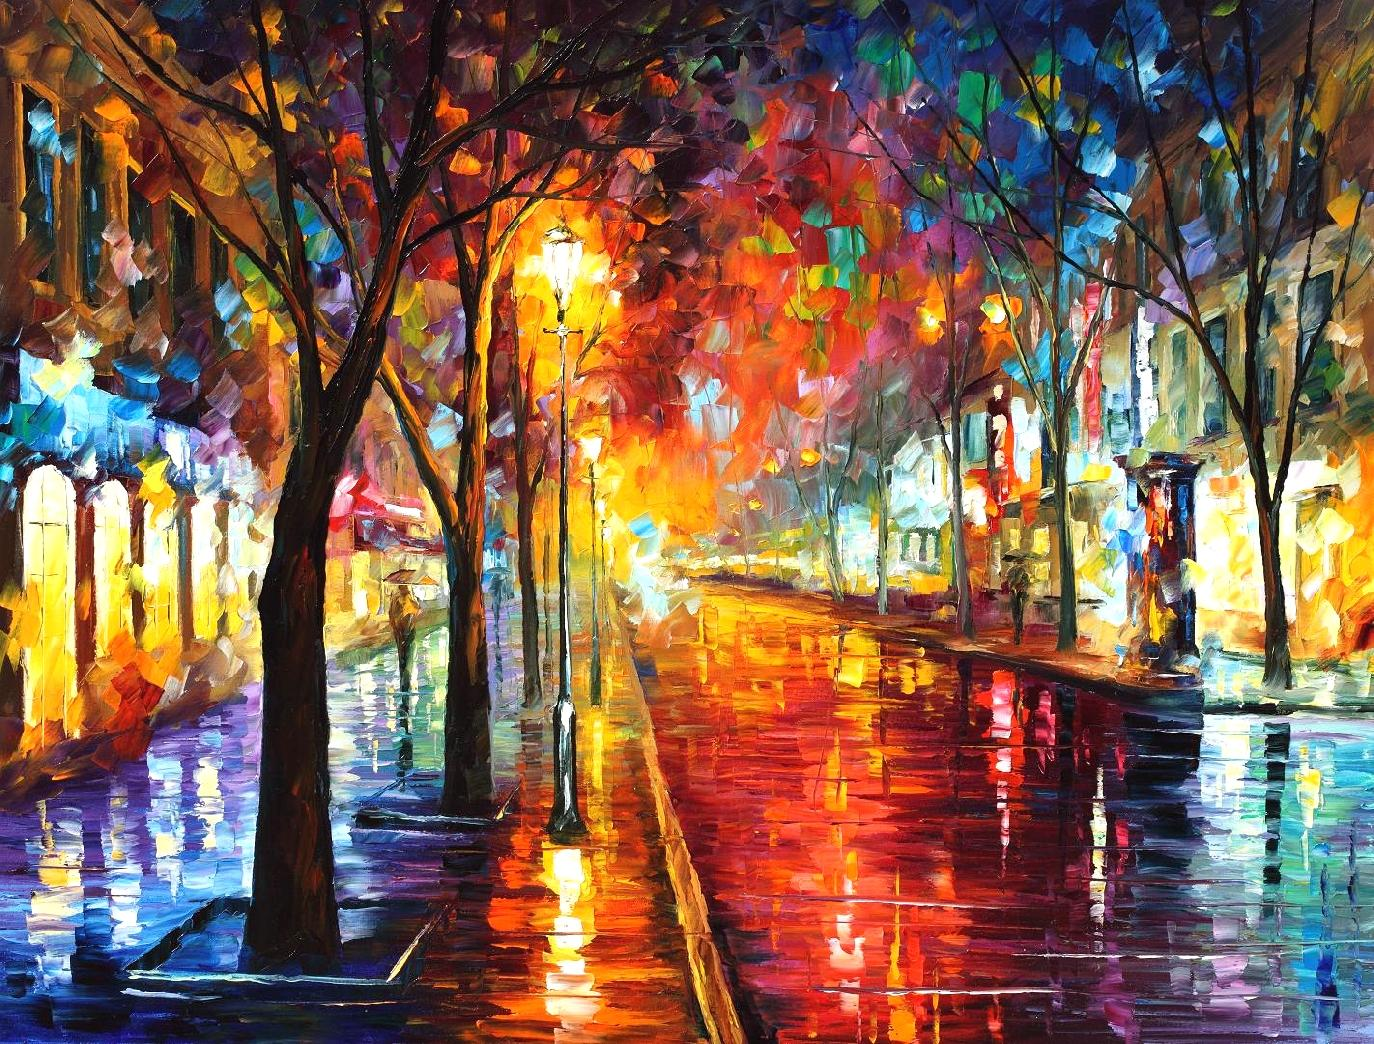 Street Of The Old Town Palette Knife Oil Painting On